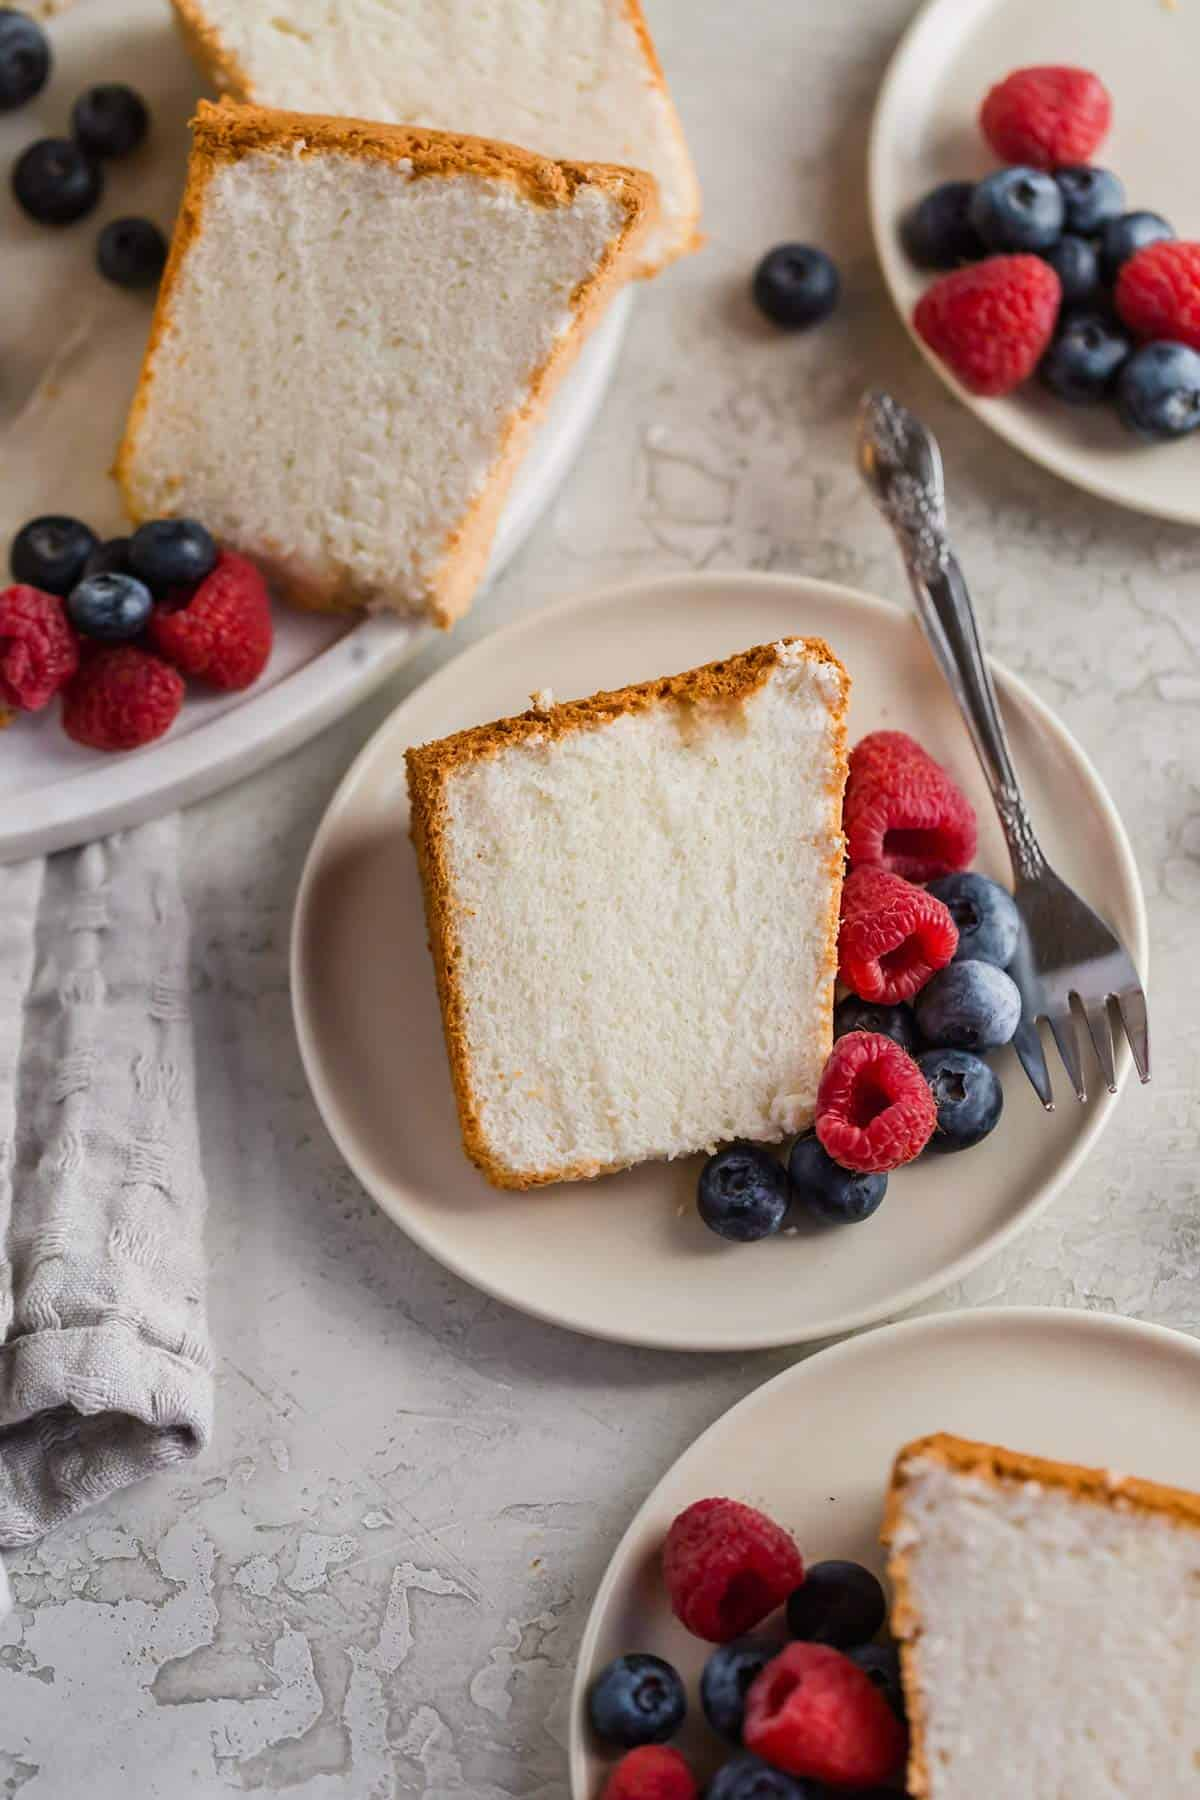 Slices of angel food cake on plates with blueberries and raspberries.